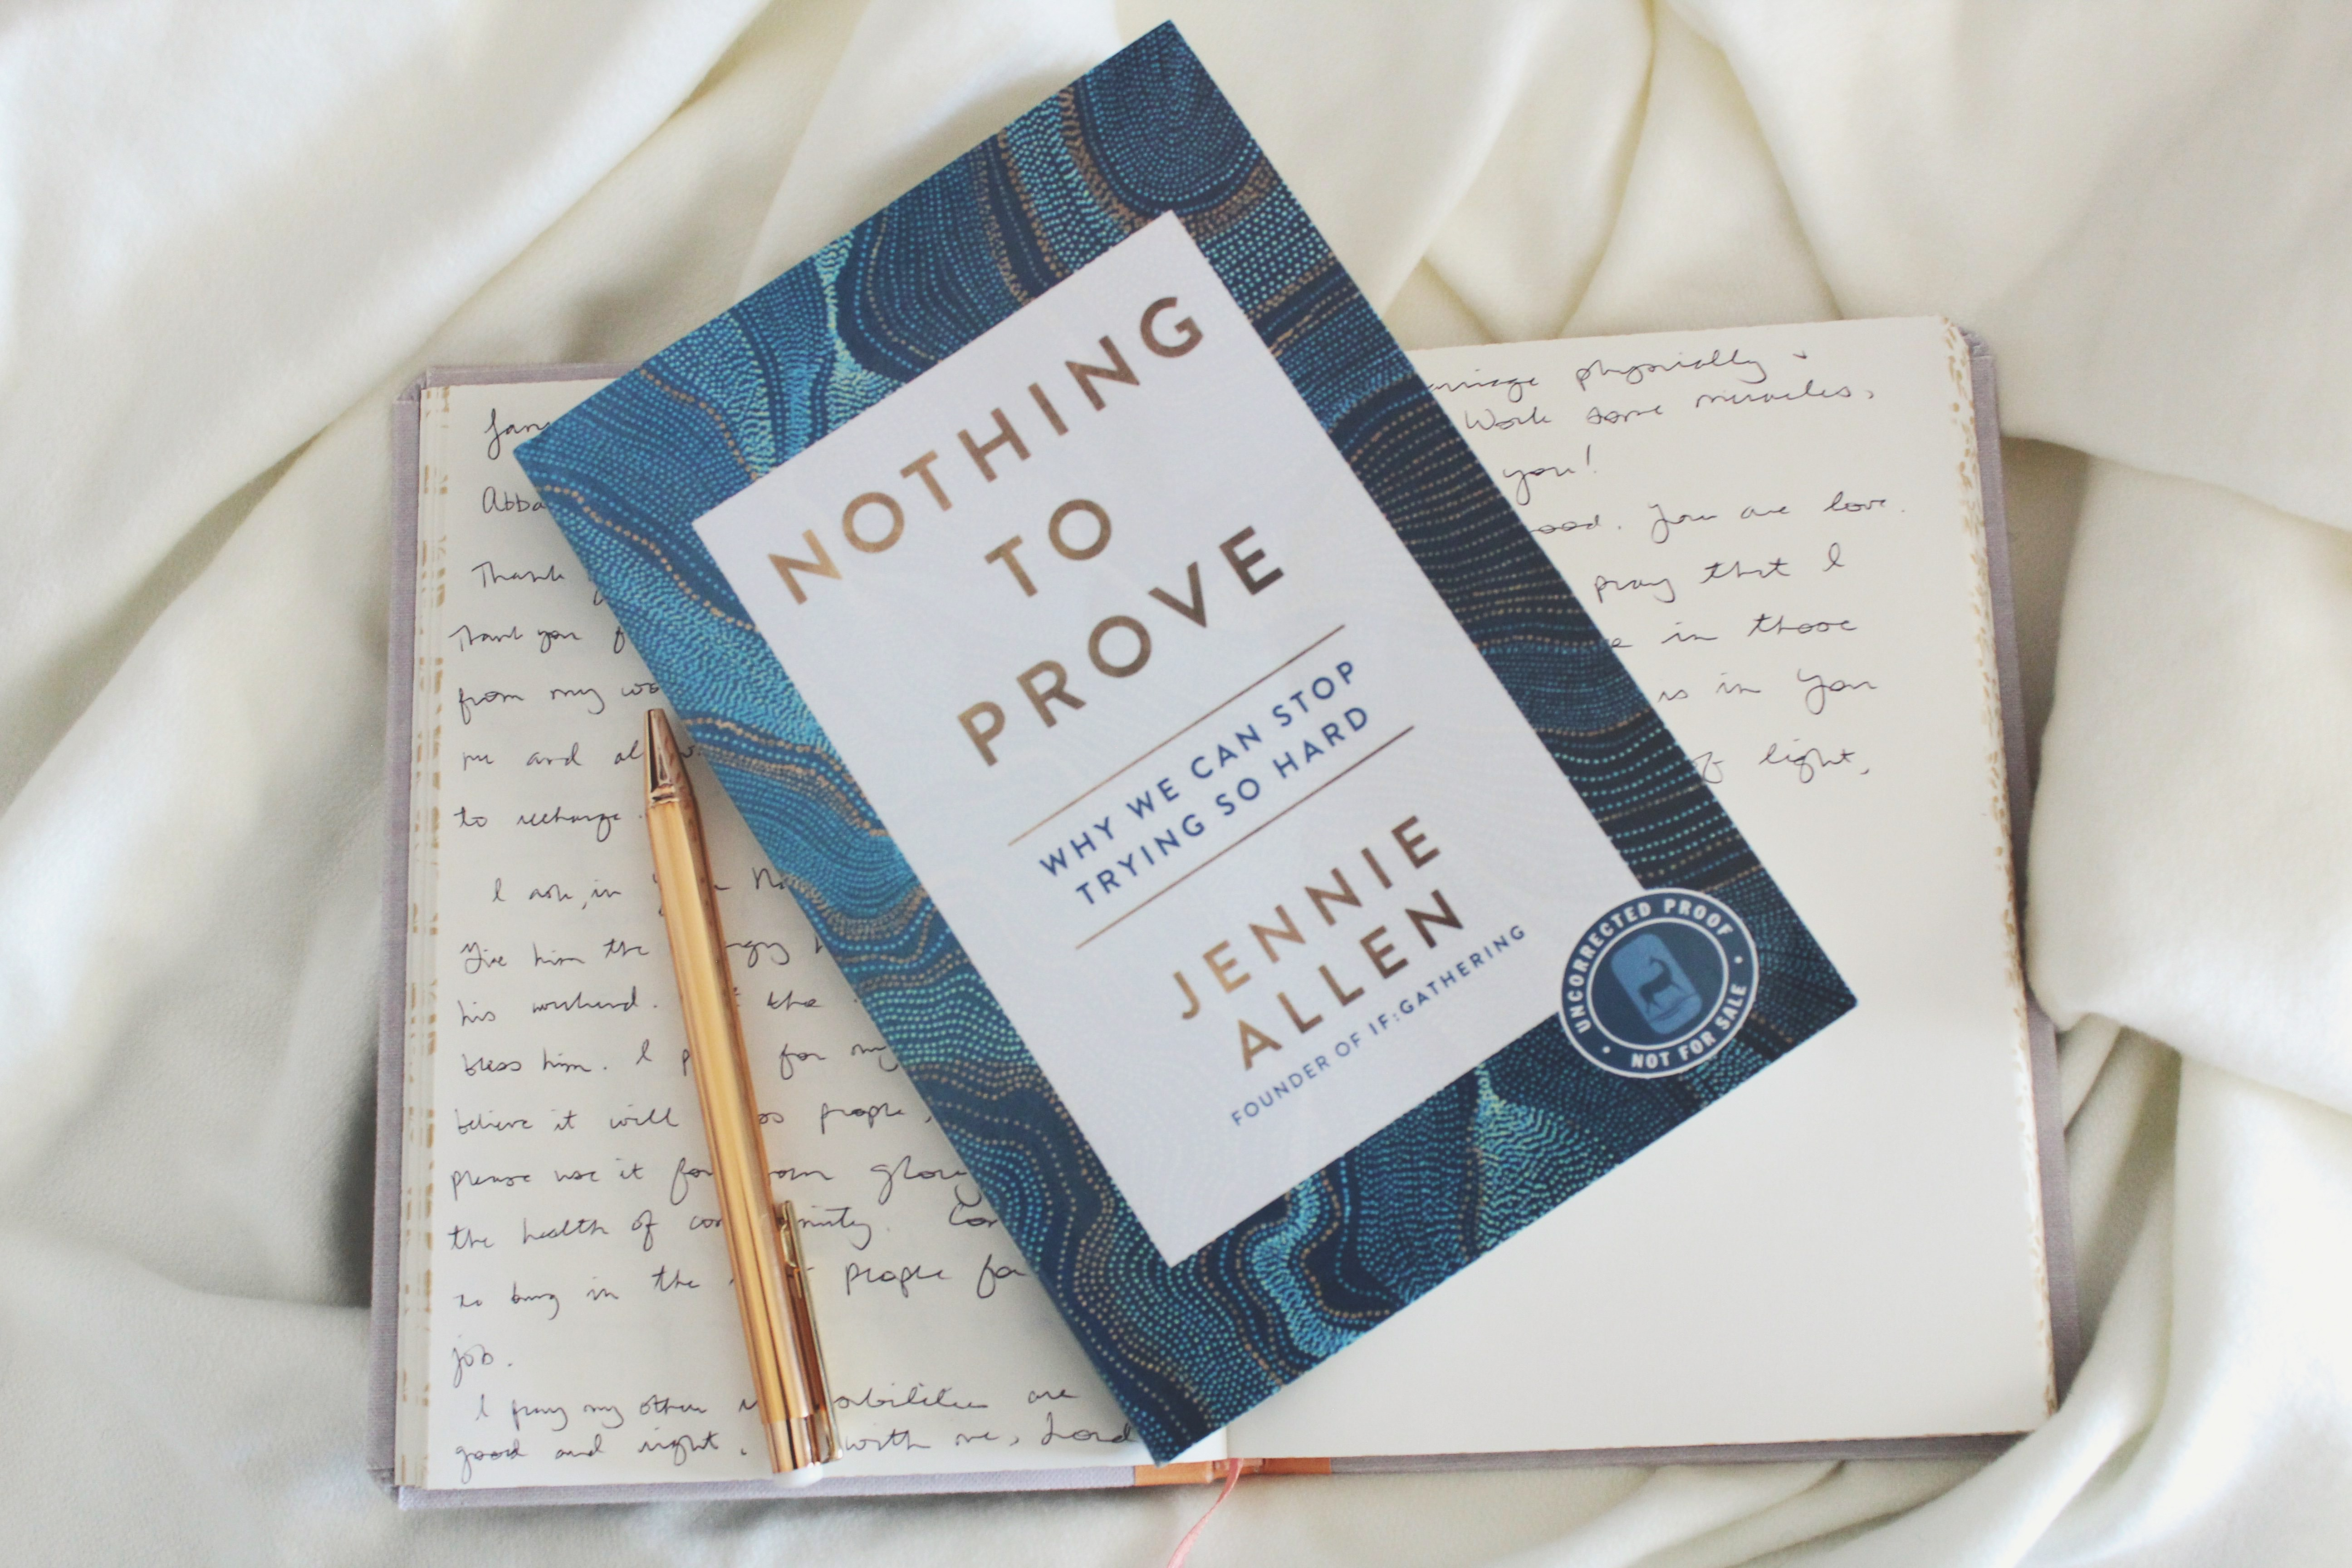 Books that Build Relationships: Nothing to Prove